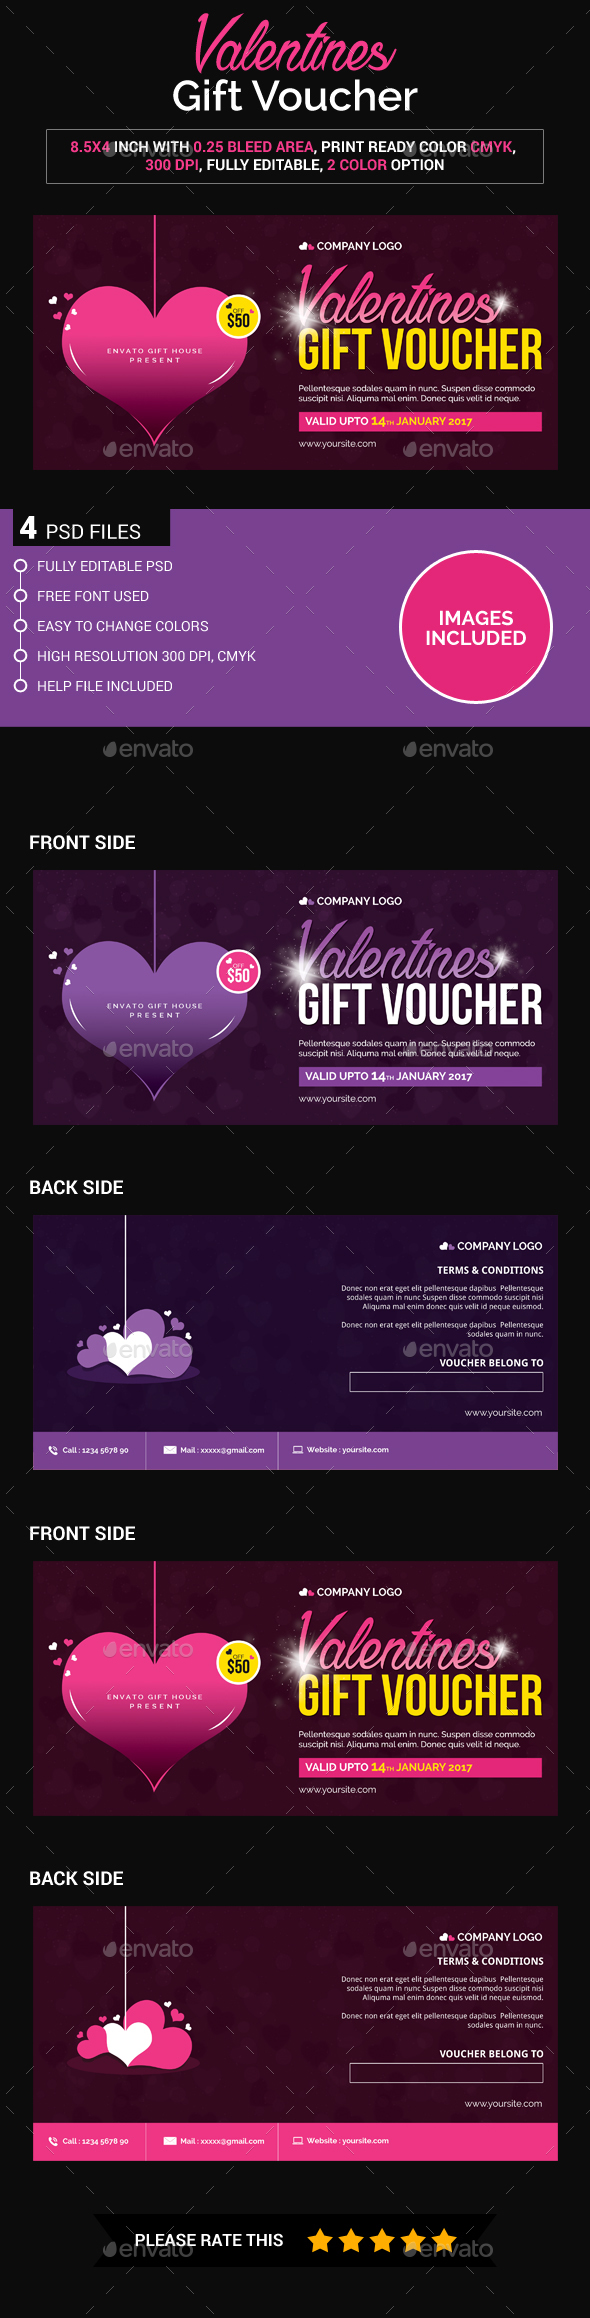 Valentines Gift Voucher - Loyalty Cards Cards & Invites